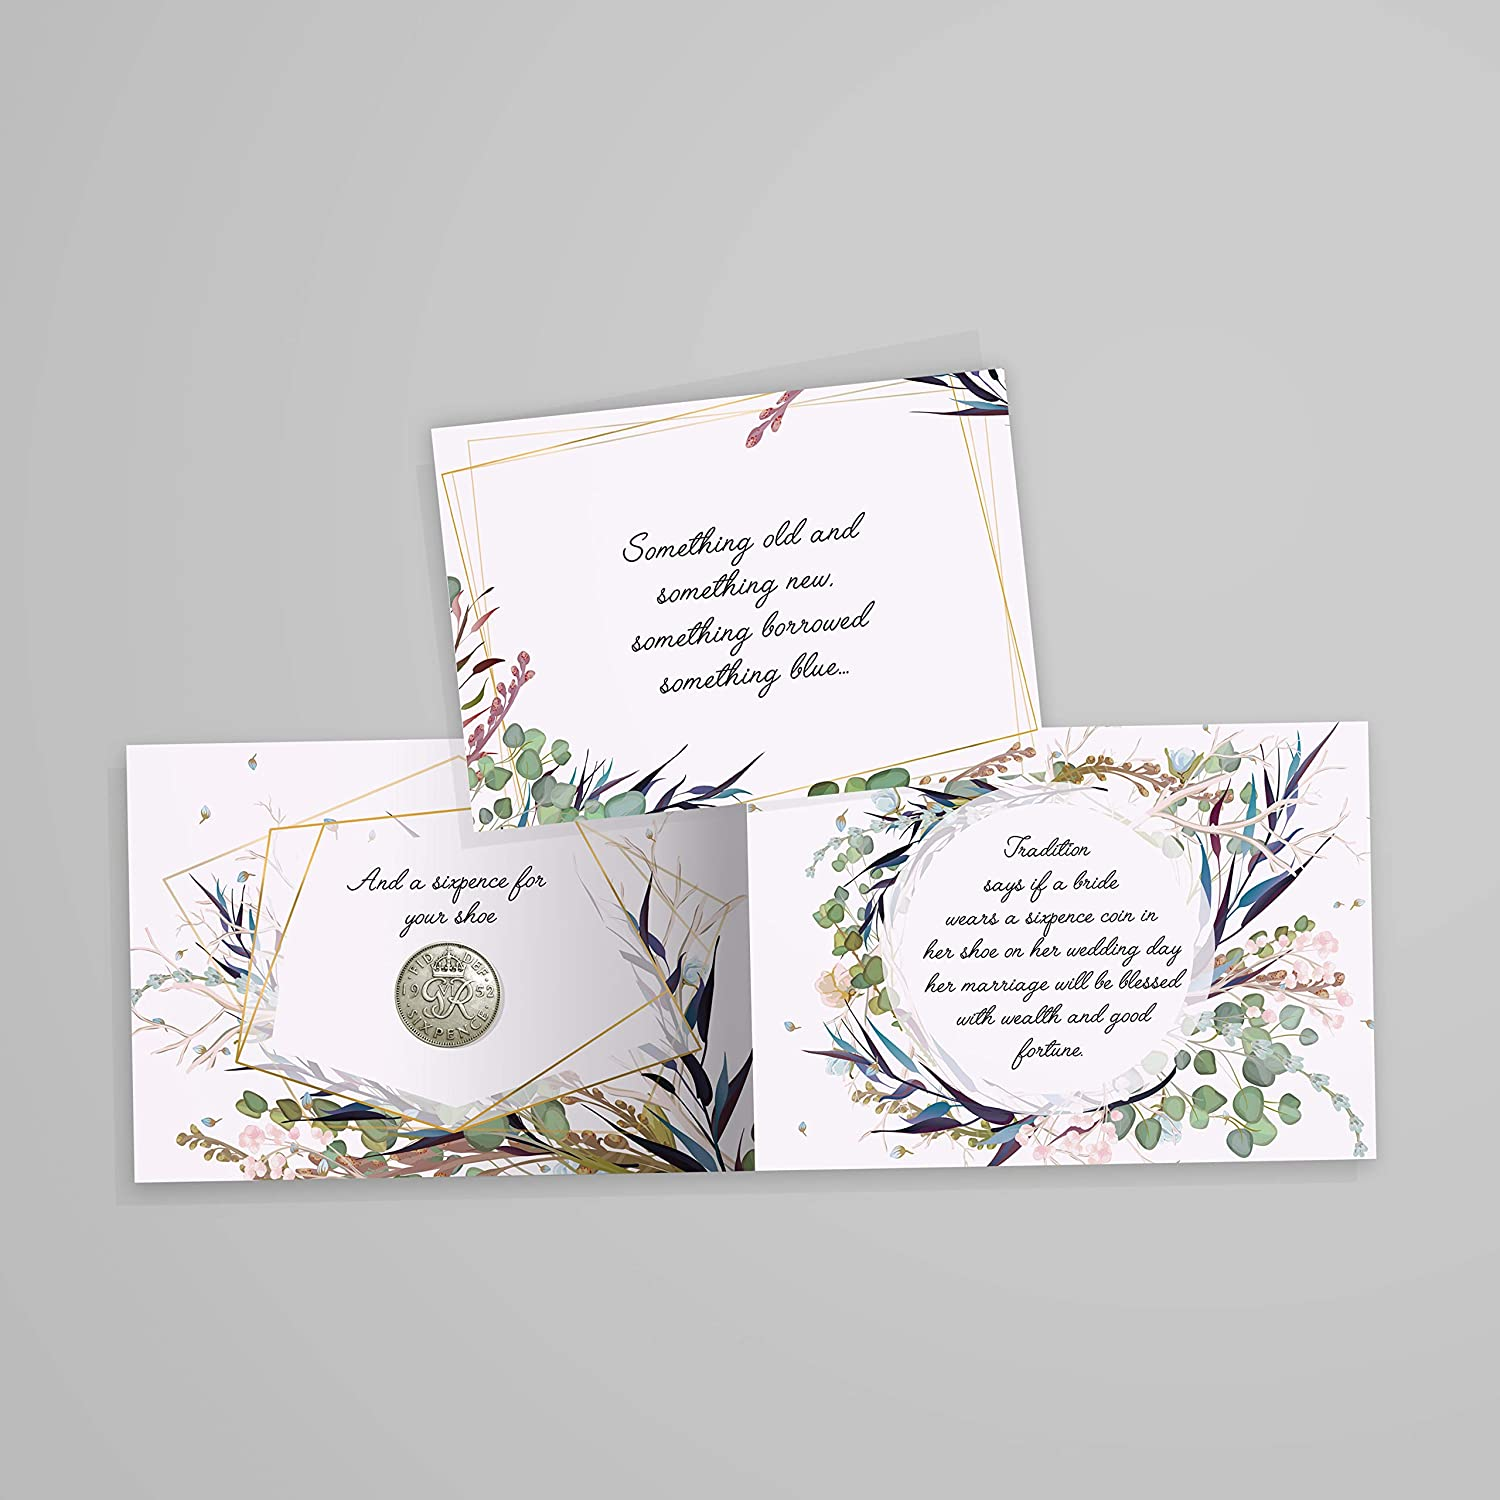 Amazon Com Authentic Sixpence Coin With Card Envelope For The Bride Something Old Something New Something Borrowed Something Blue And A Sixpence For Her Shoe Toys Games